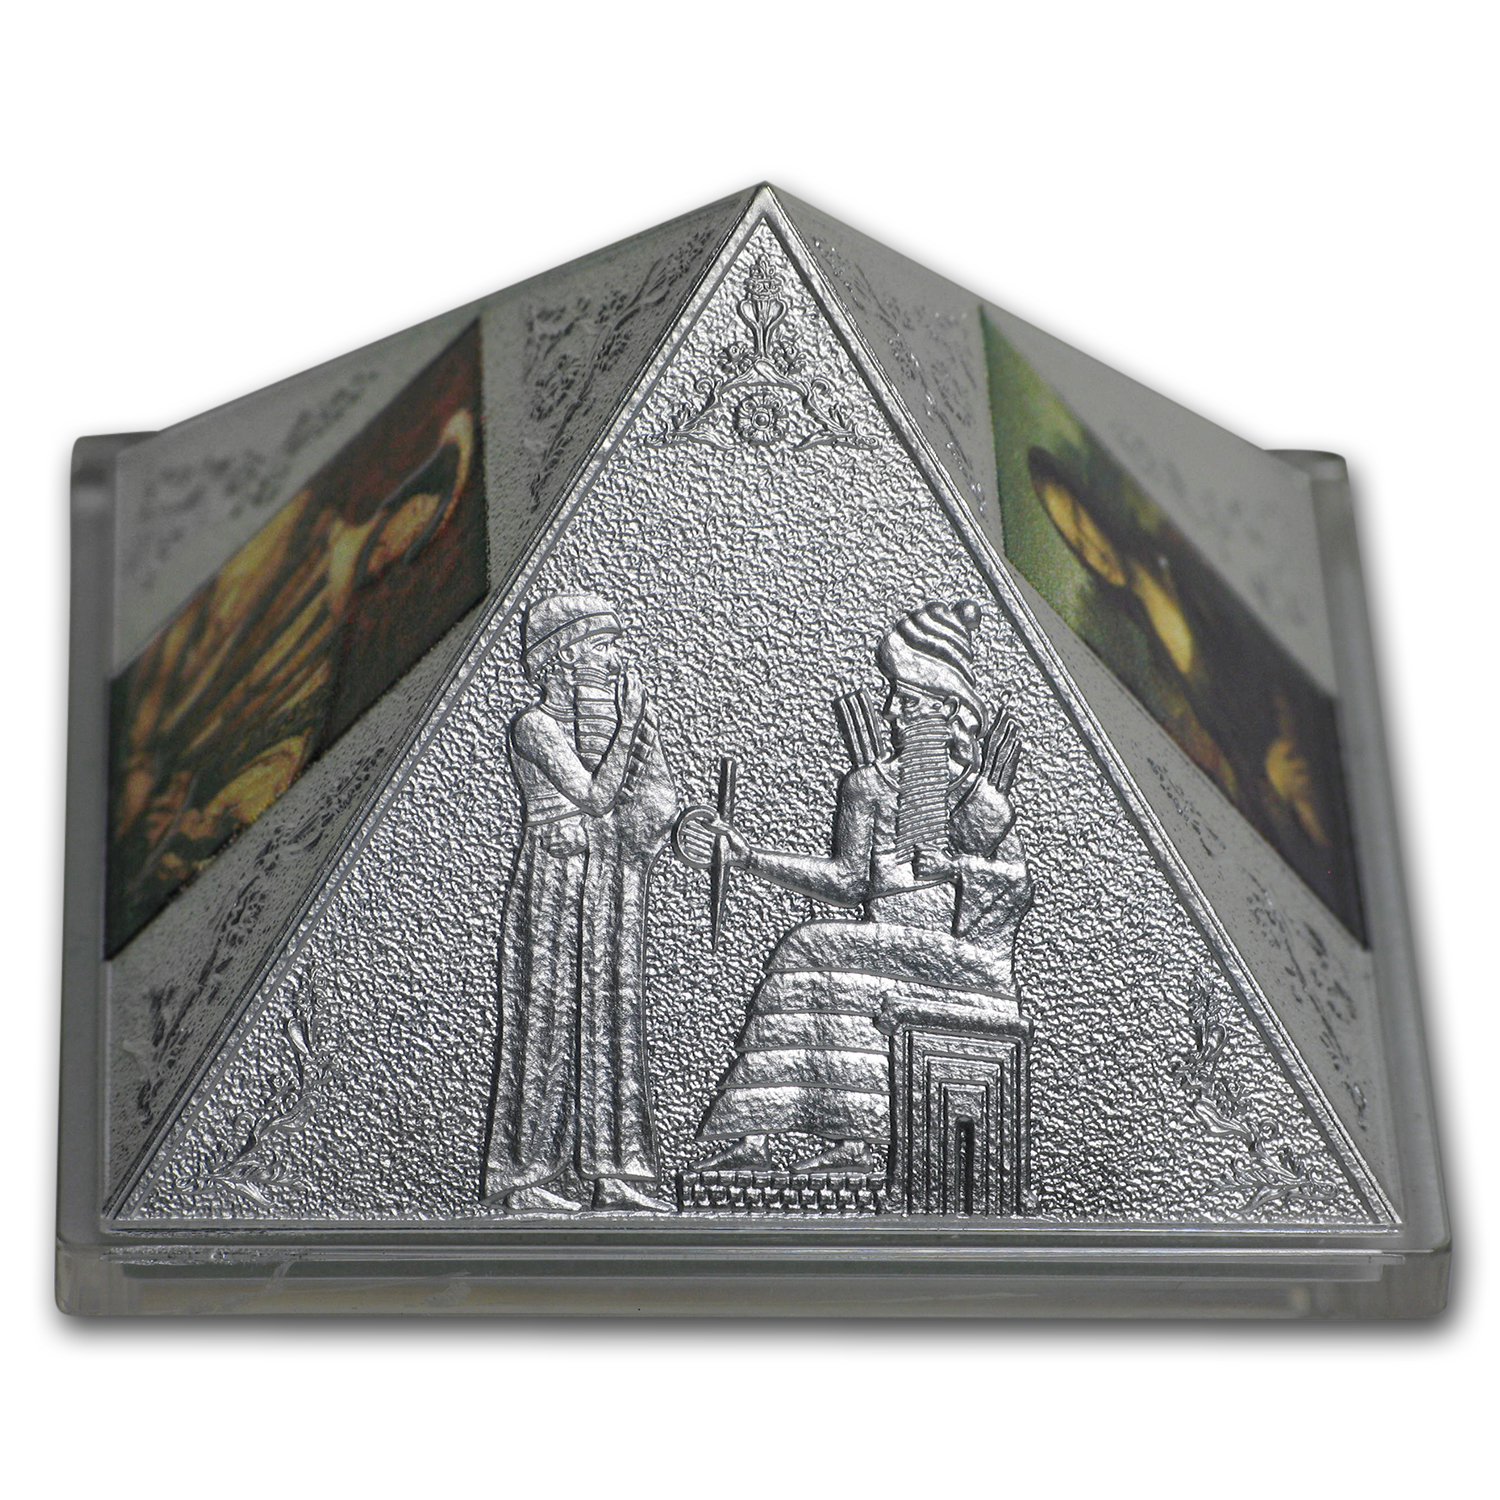 2016 Niue 3 oz Silver Temple of Art Proof (Pyramid Coin)